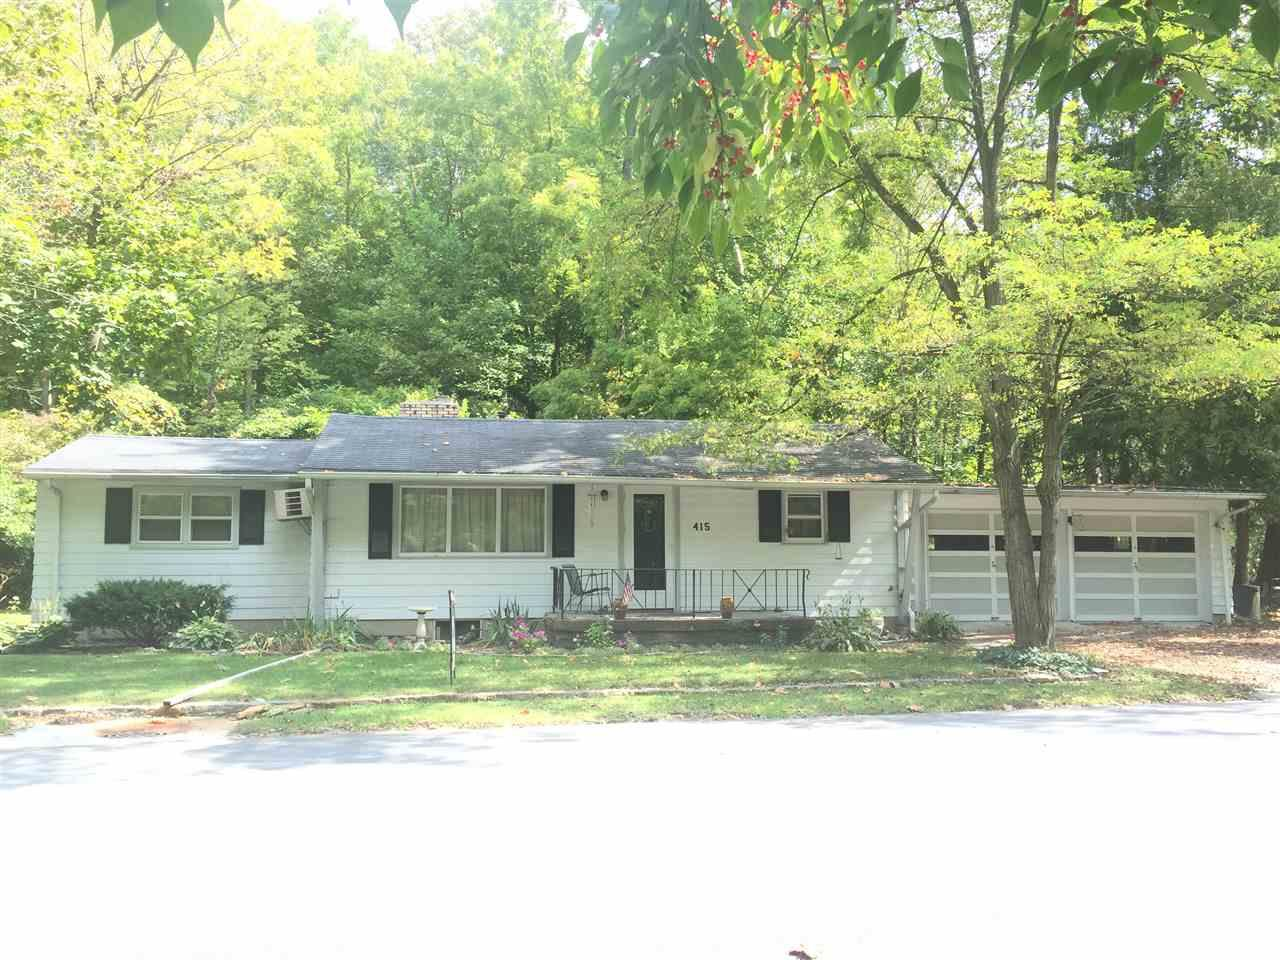 415 Armstrong Ave, Peru, IN 46970